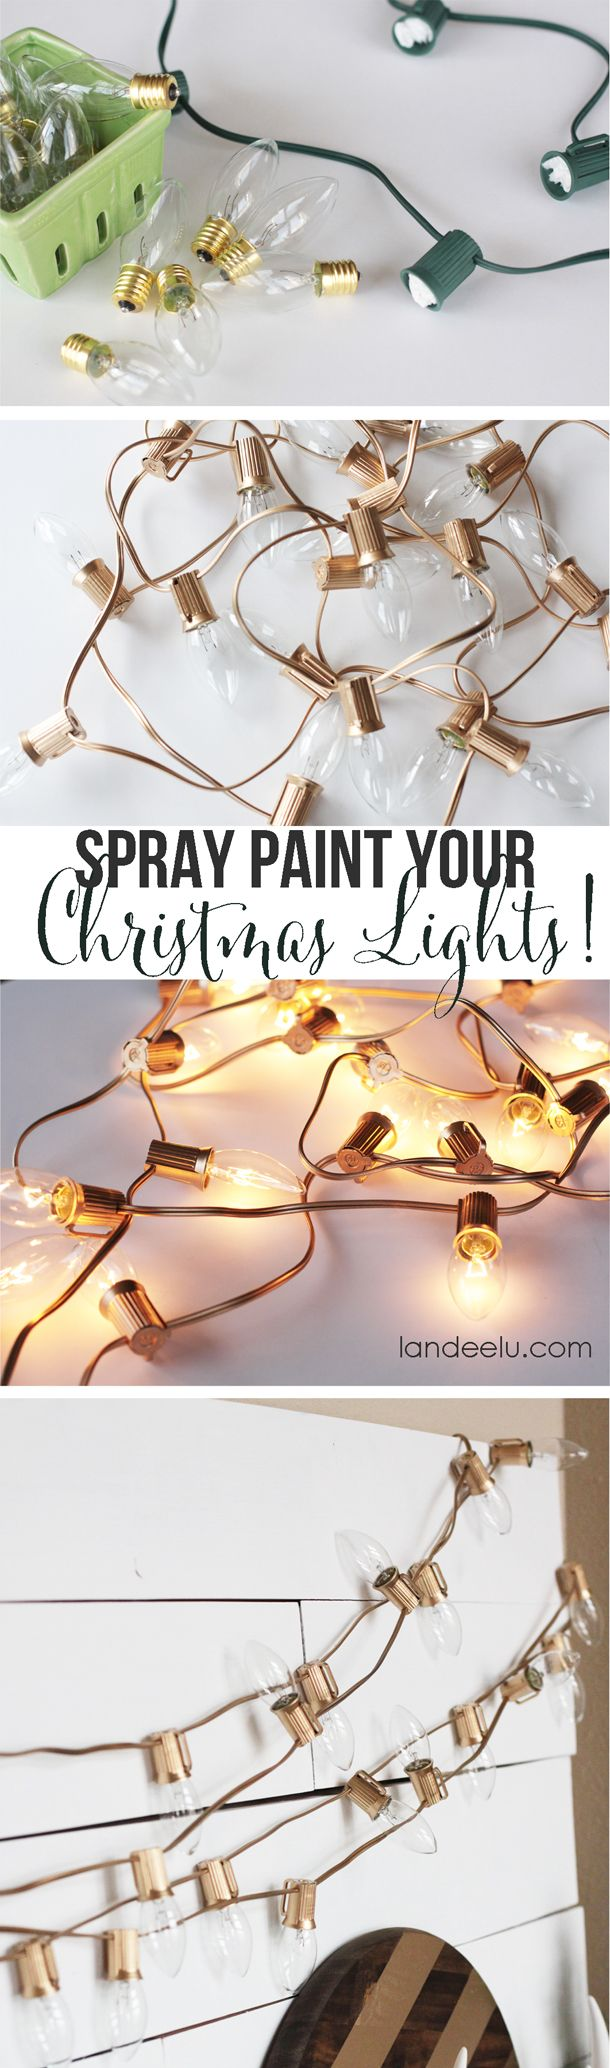 Spray Paint Your Christmas Lights! Who would have thought! Decorating for Christmas